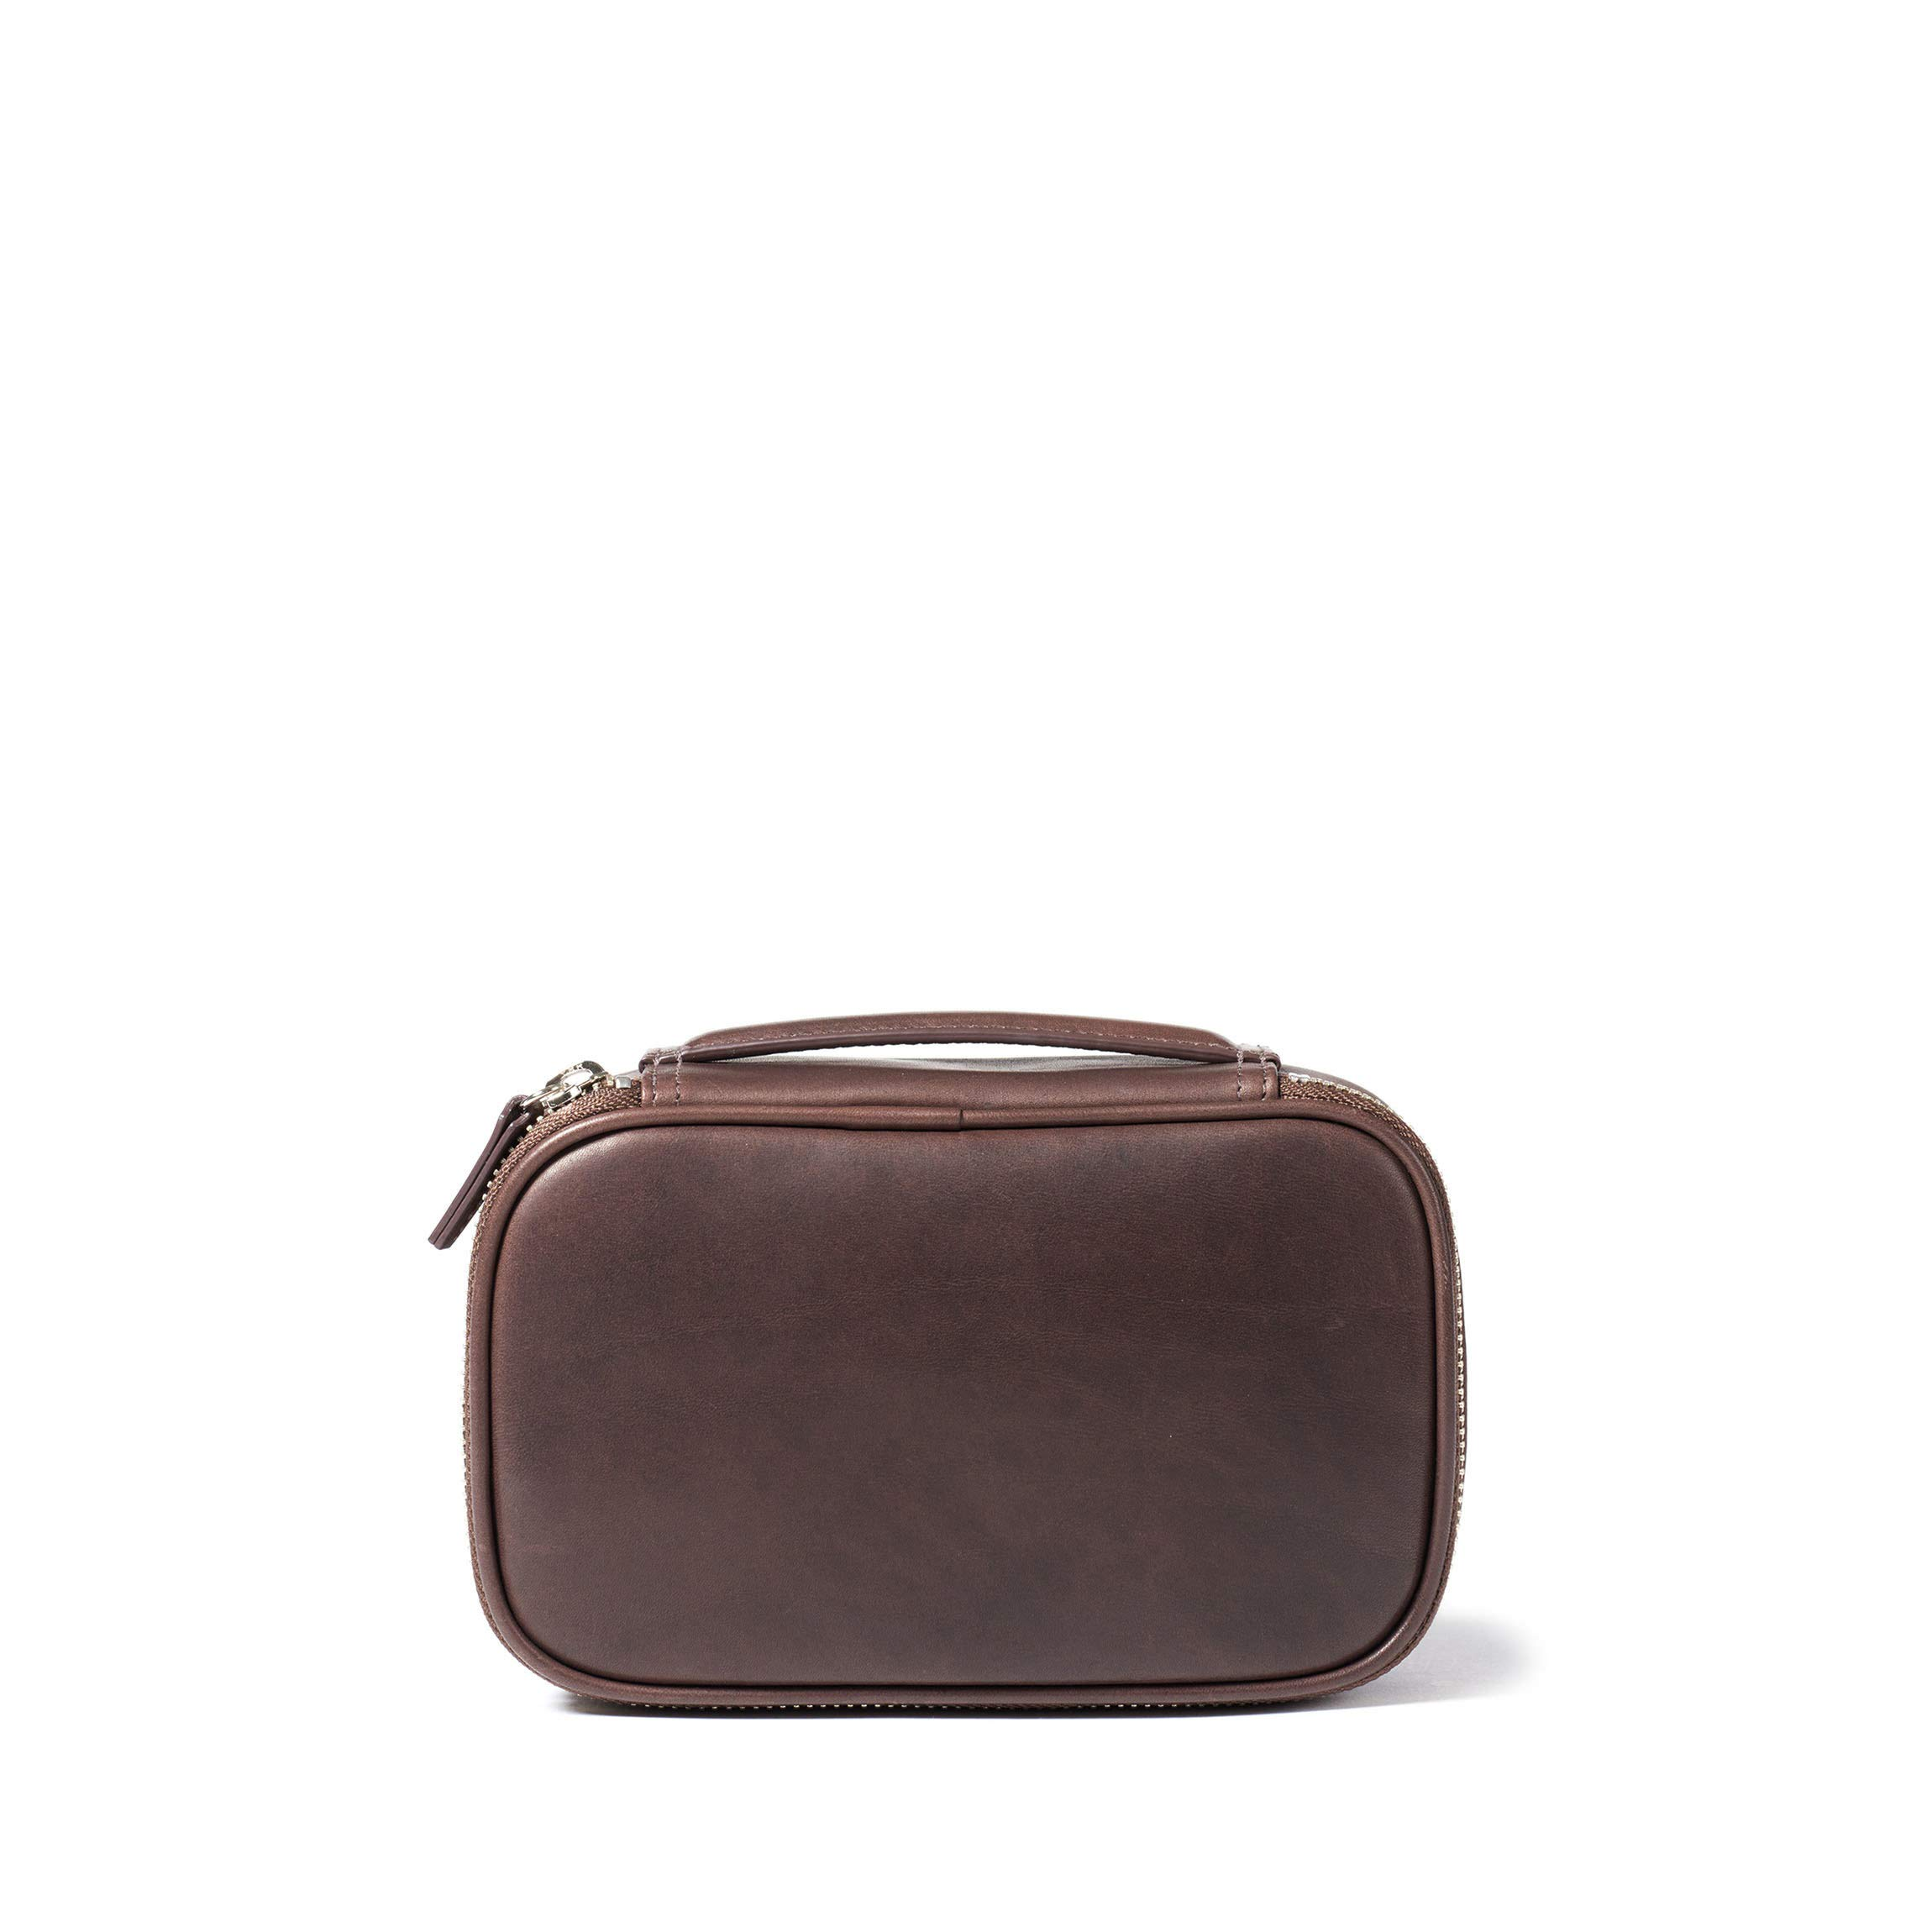 Leatherology Small Travel Organizer - Full Grain German Leather Leather - Mahogany (brown)